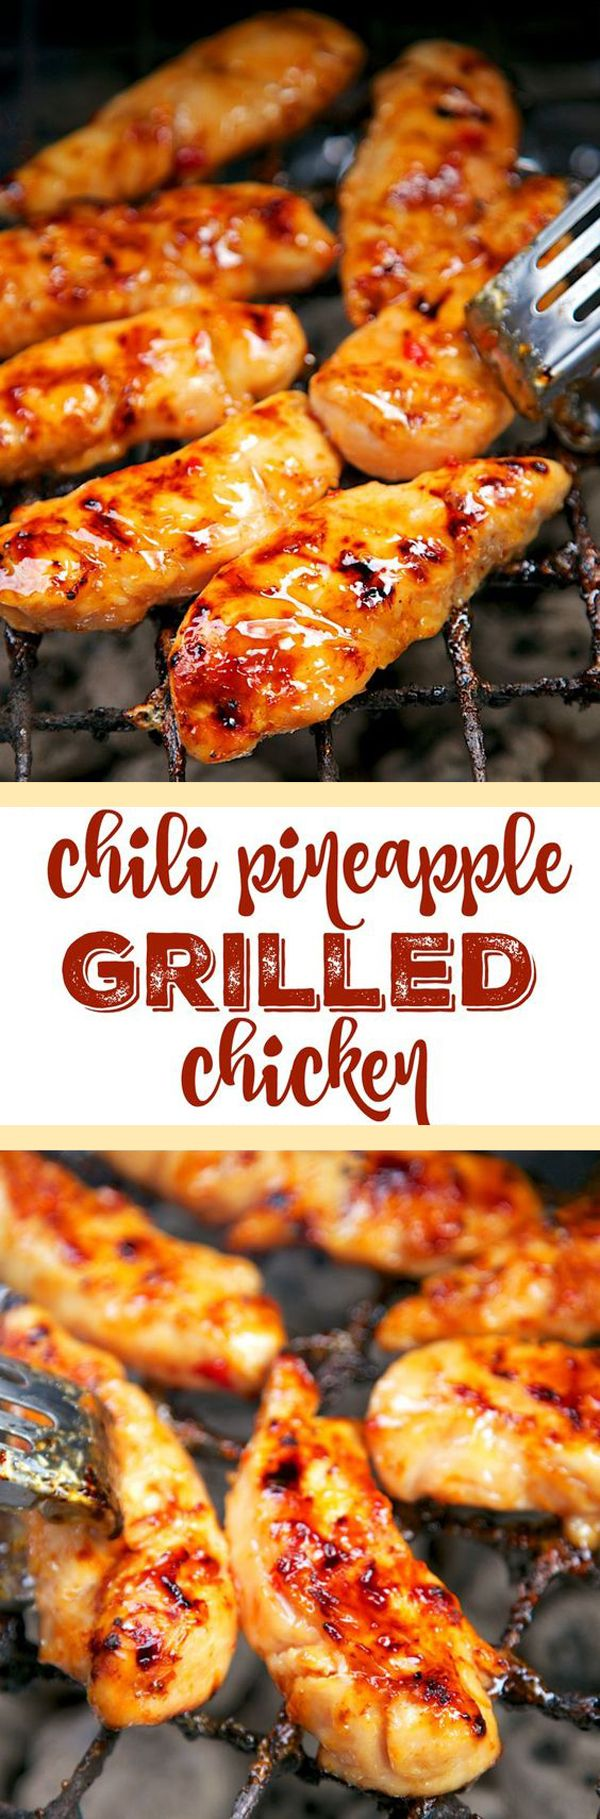 Chili Pineapple Grilled Chicken - only simple 4 ingredients! TONS of great flavor!! We ate this chicken 2 days in a row! Grilling o...